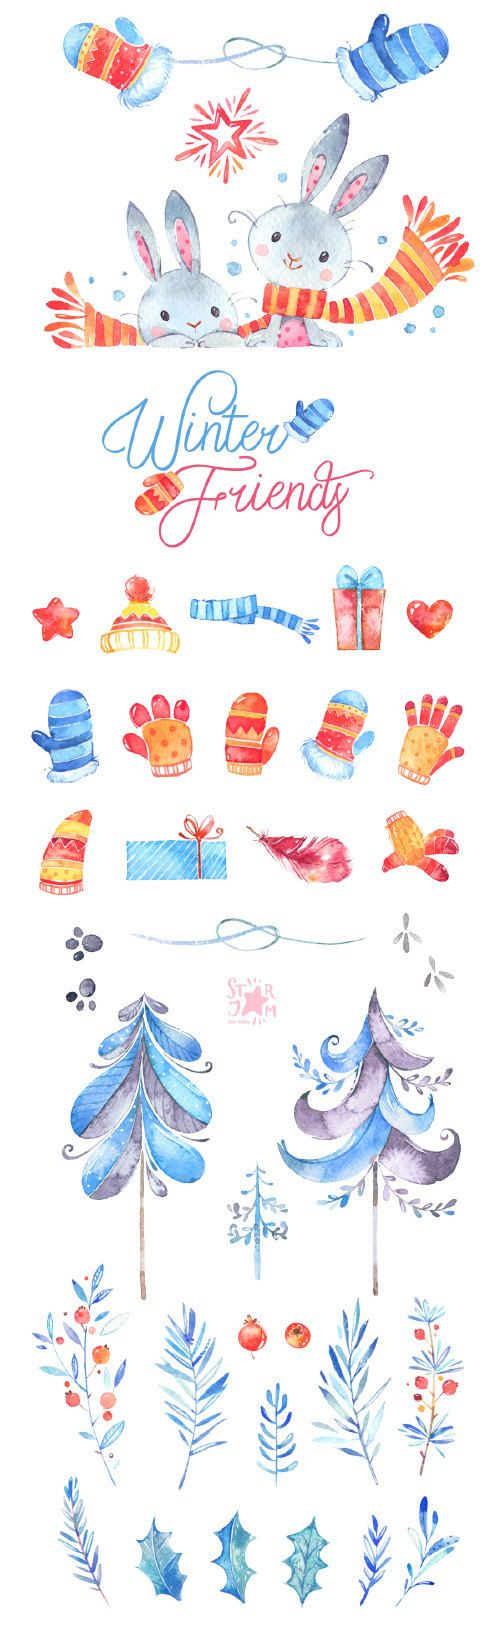 This Great Winter collection is just what you needed for the perfect invitations, Holidays projects, paper products, party decorations, printable, greetings cards, posters, stationery, scrapbooking, stickers, t-shirts, baby clothes, web designs and much more.  ::::: DETAILS :::::  This collection includes 48 images: - 10 Charachters(penguins, fox, bear, birds, mouses, bullfinch) in separate PNG files, transparent background - 38 Different Elements in separate PNG files, transparent…